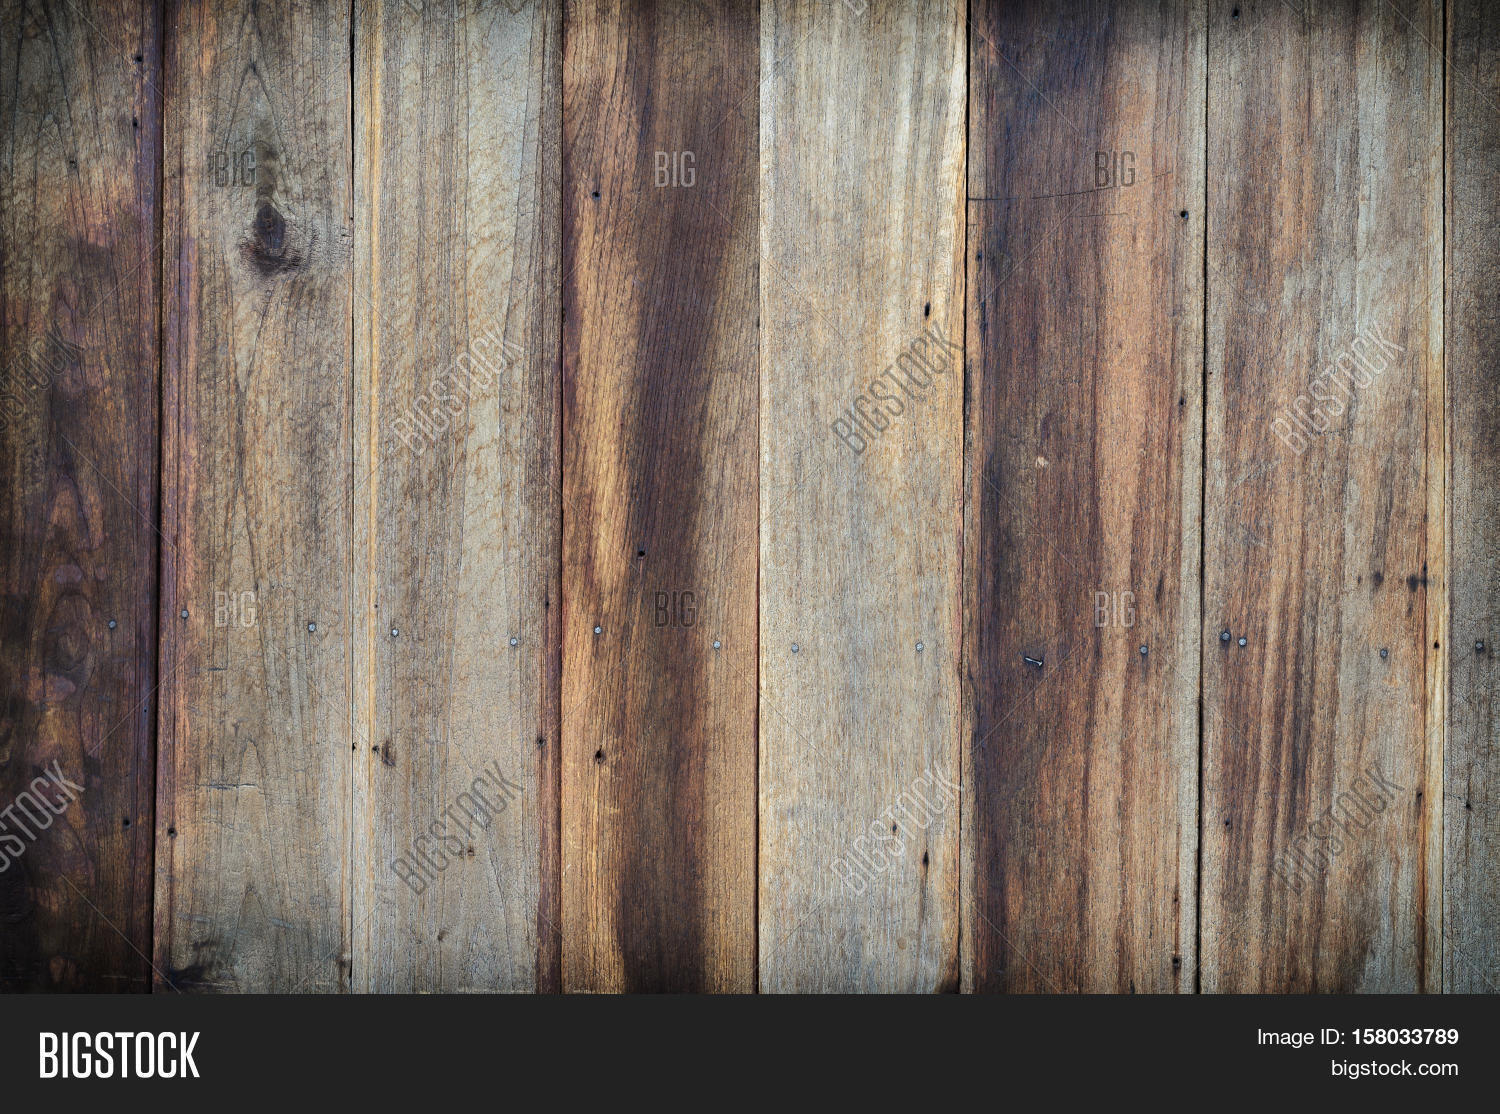 Wooden table background pattern - Wood Texture Background Vintage Wood Texture Background Dark Wood Texture Dark Wood Table